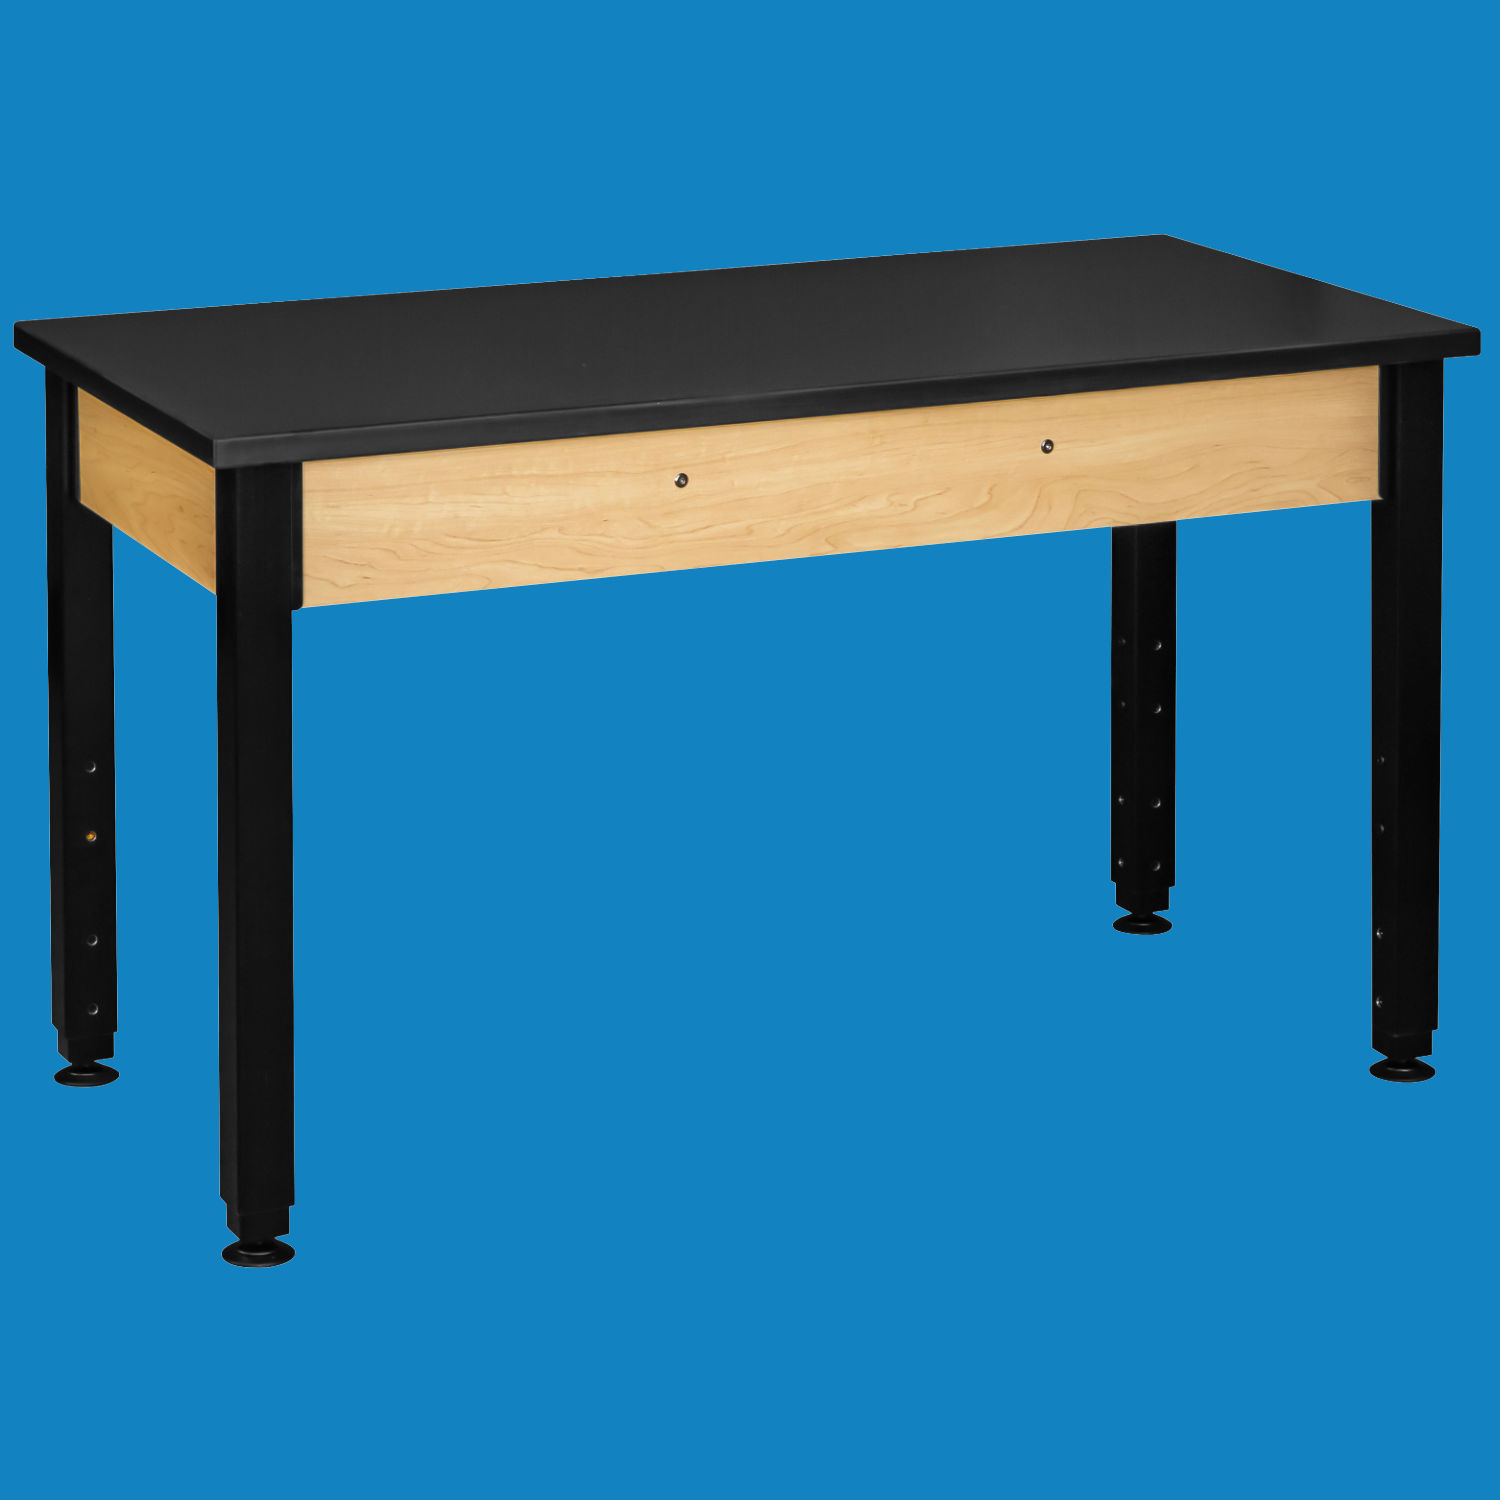 Classroom Tables - Adjustable Height Tables